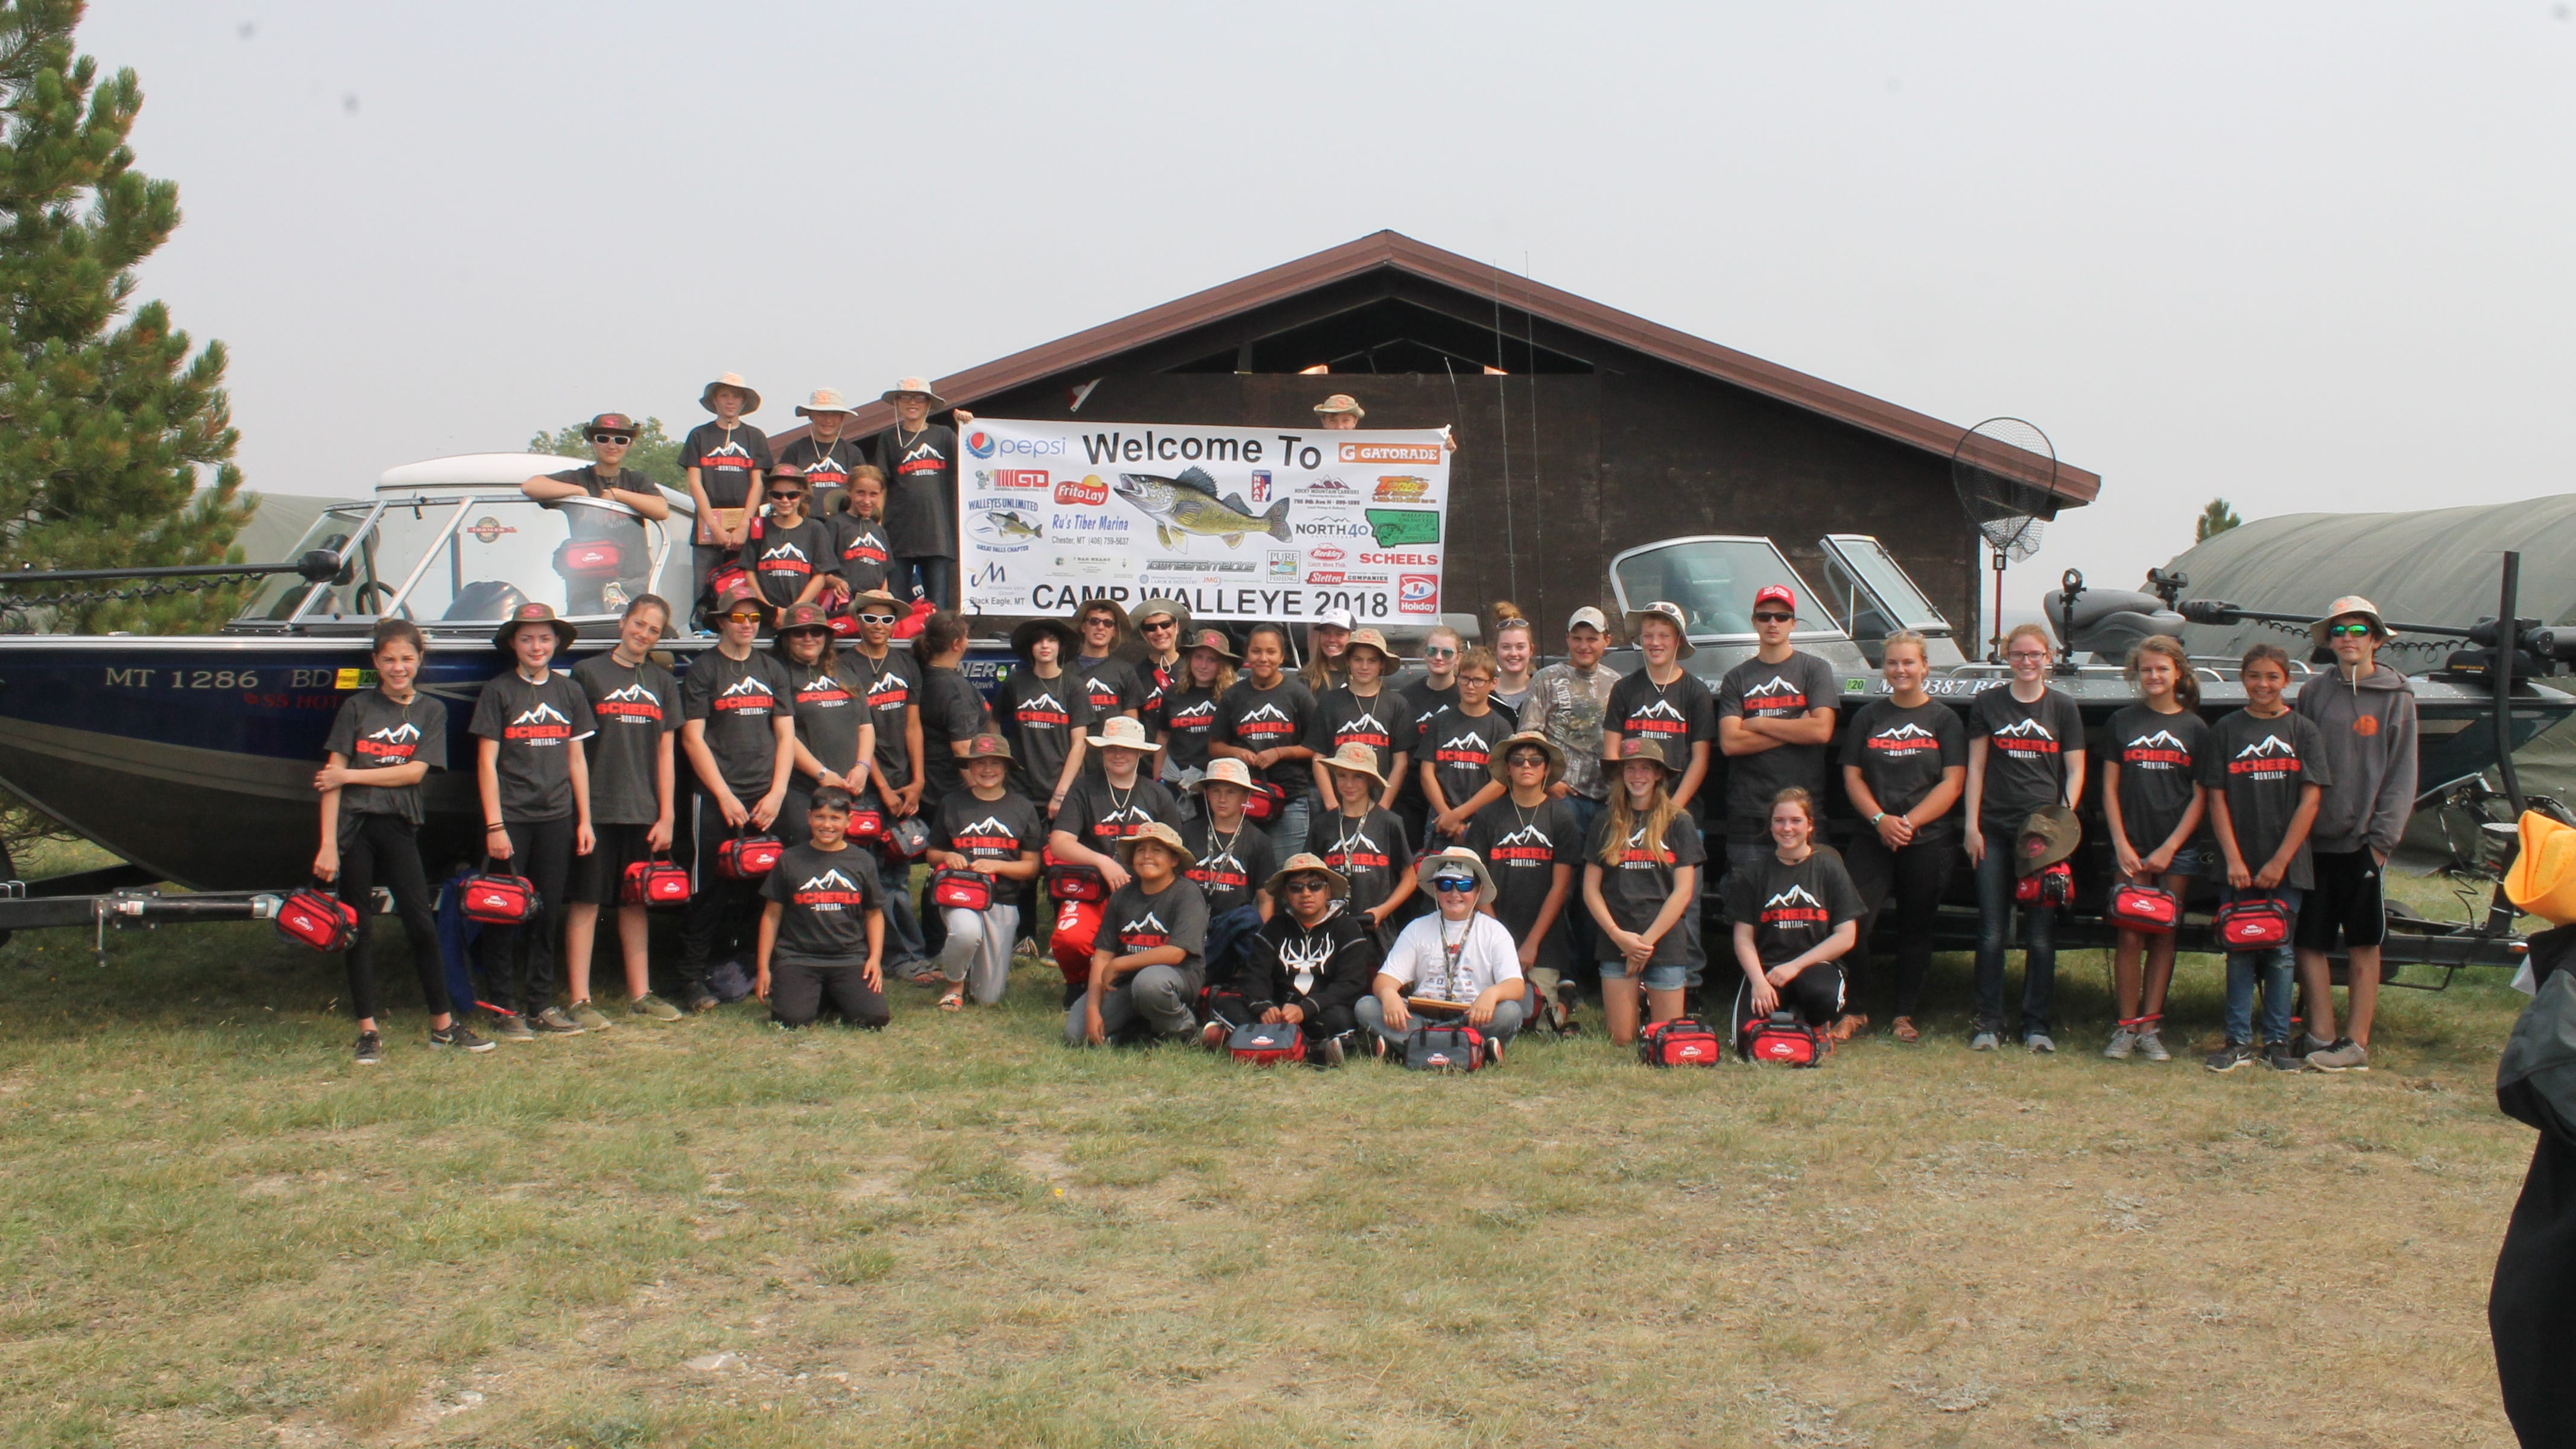 Despite weather affecting catch numbers, the 2018 Camp Walleye was still a success.